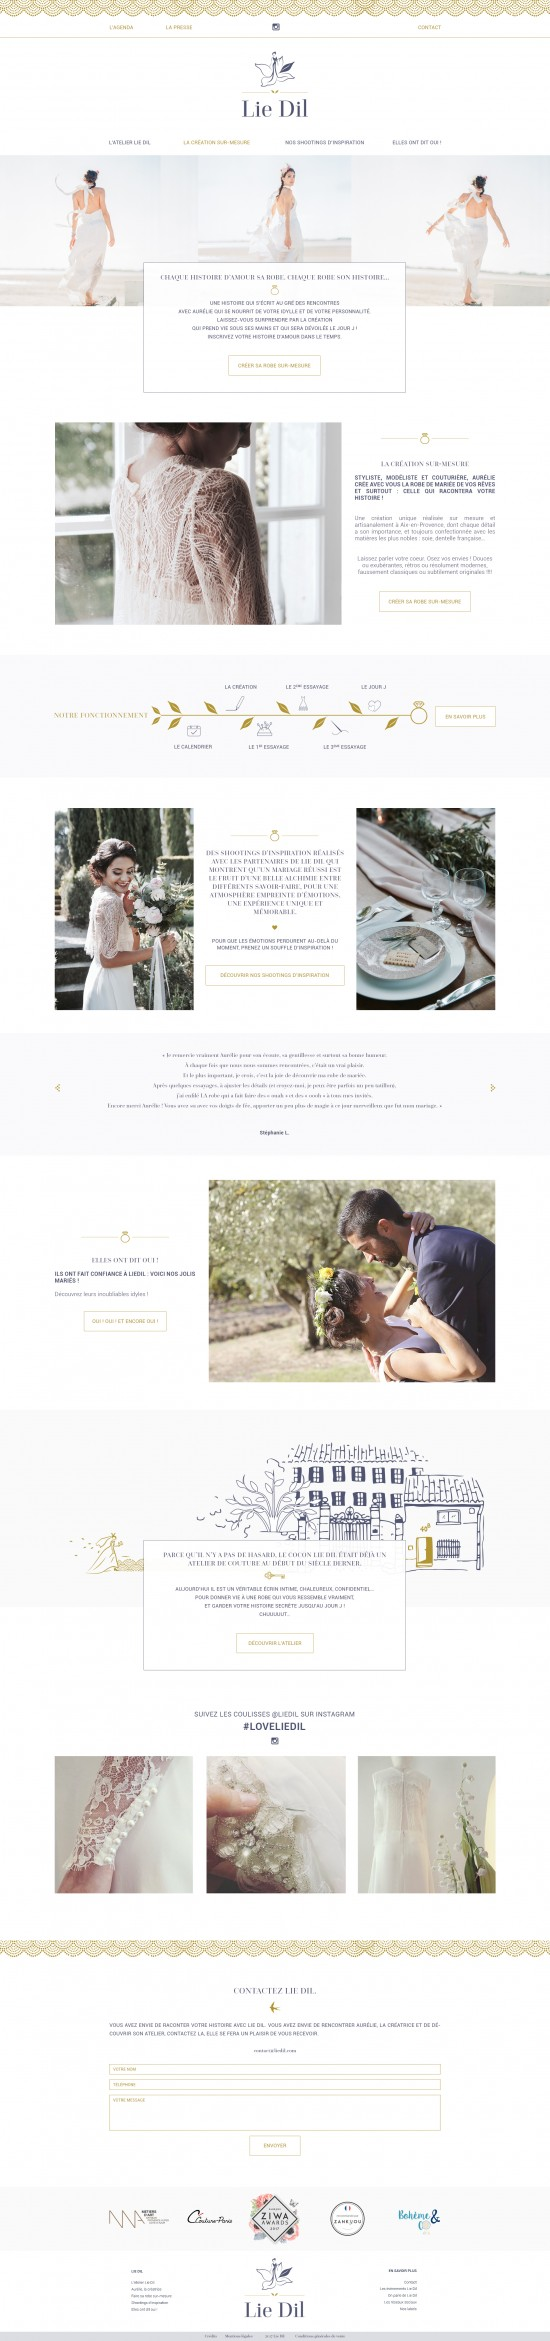 webdesign-homepage-lie-dil